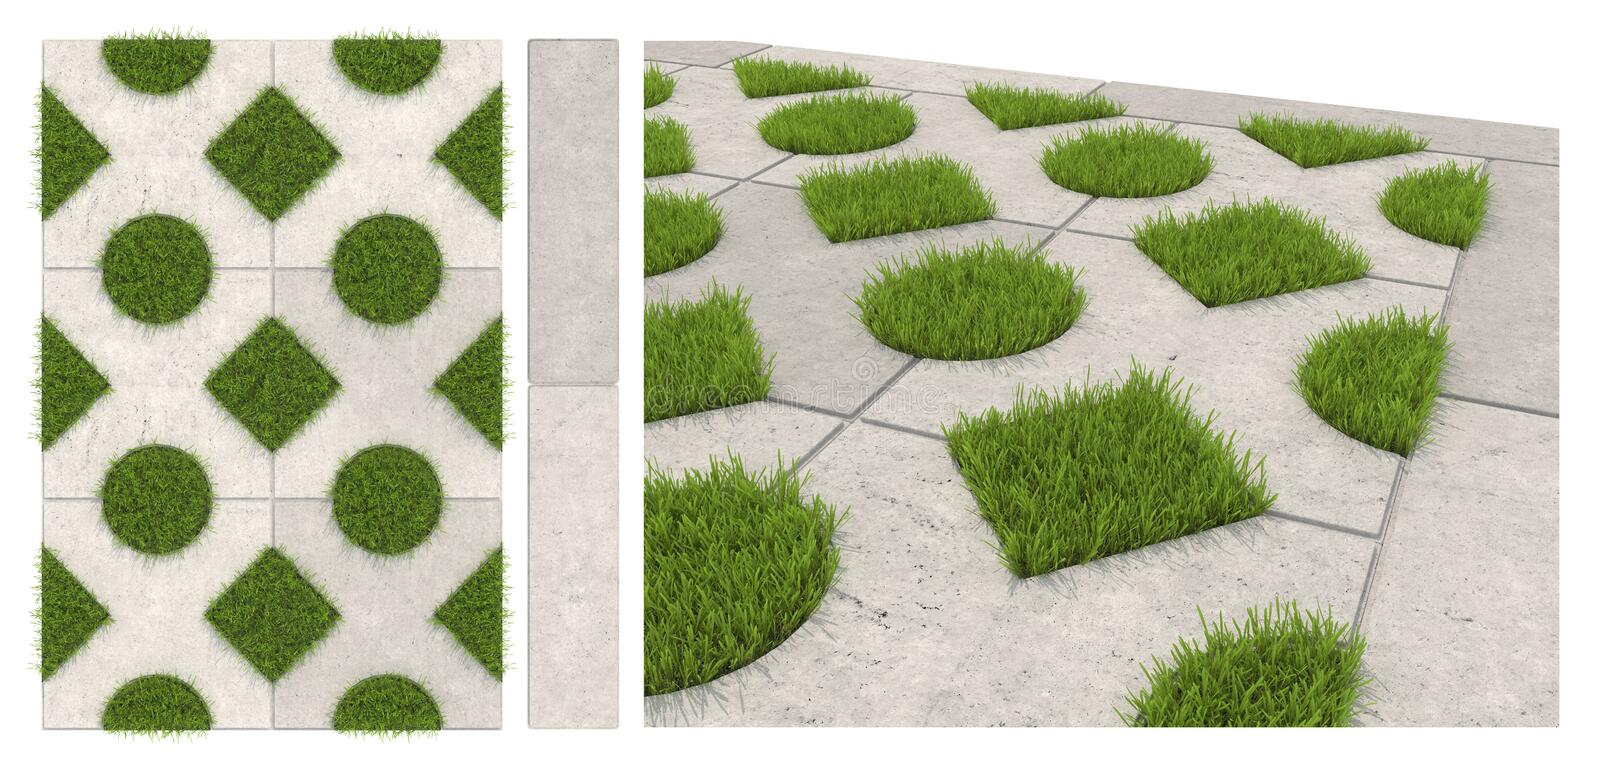 Seamless texture of sidewalk tile with holes for grass. Isolated landscape tiles on a white background. 3D visualization of paving vector illustration